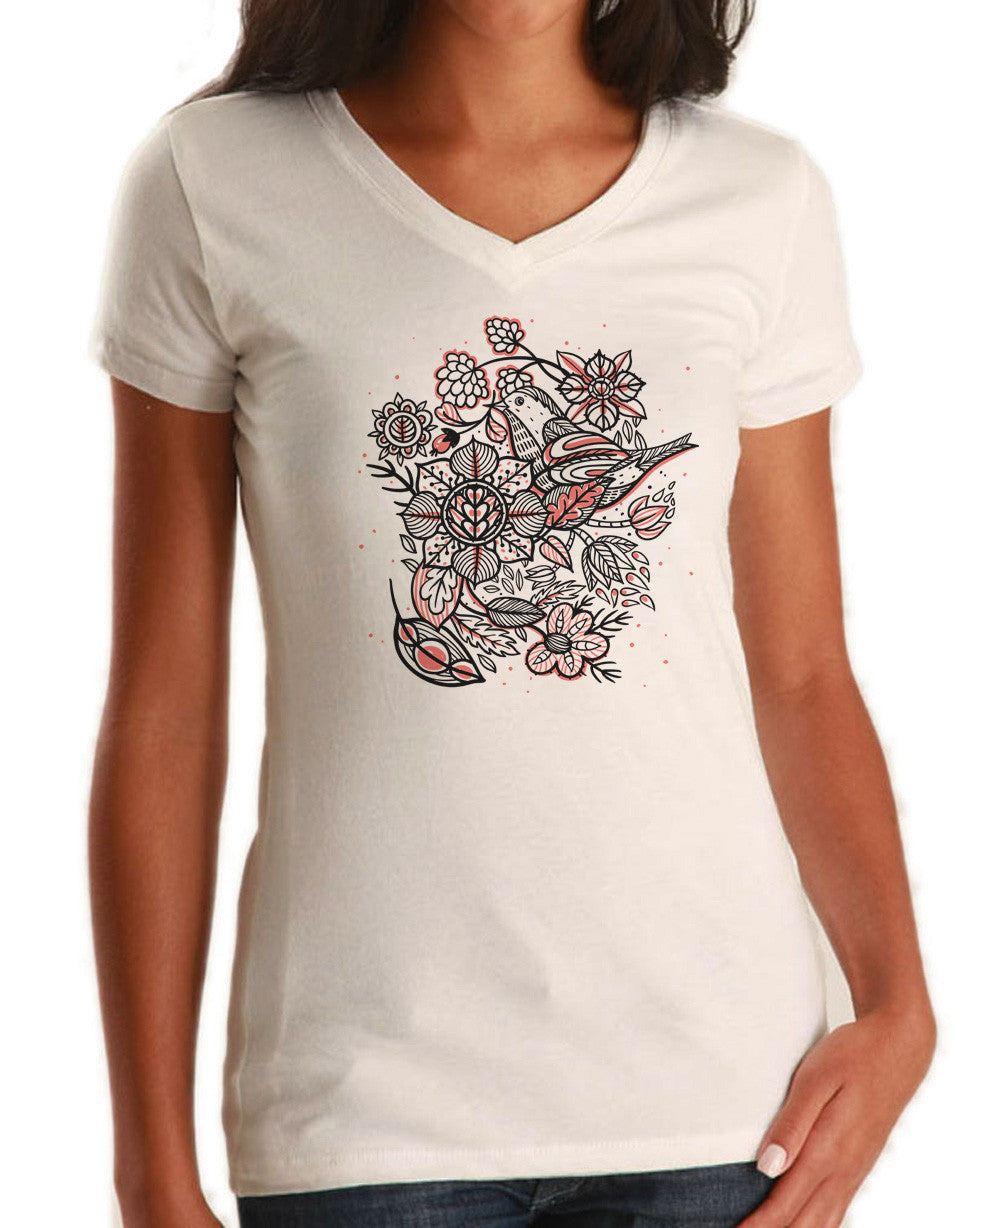 Women's Birds and Flowers Vneck T-Shirt - Juniors Fit